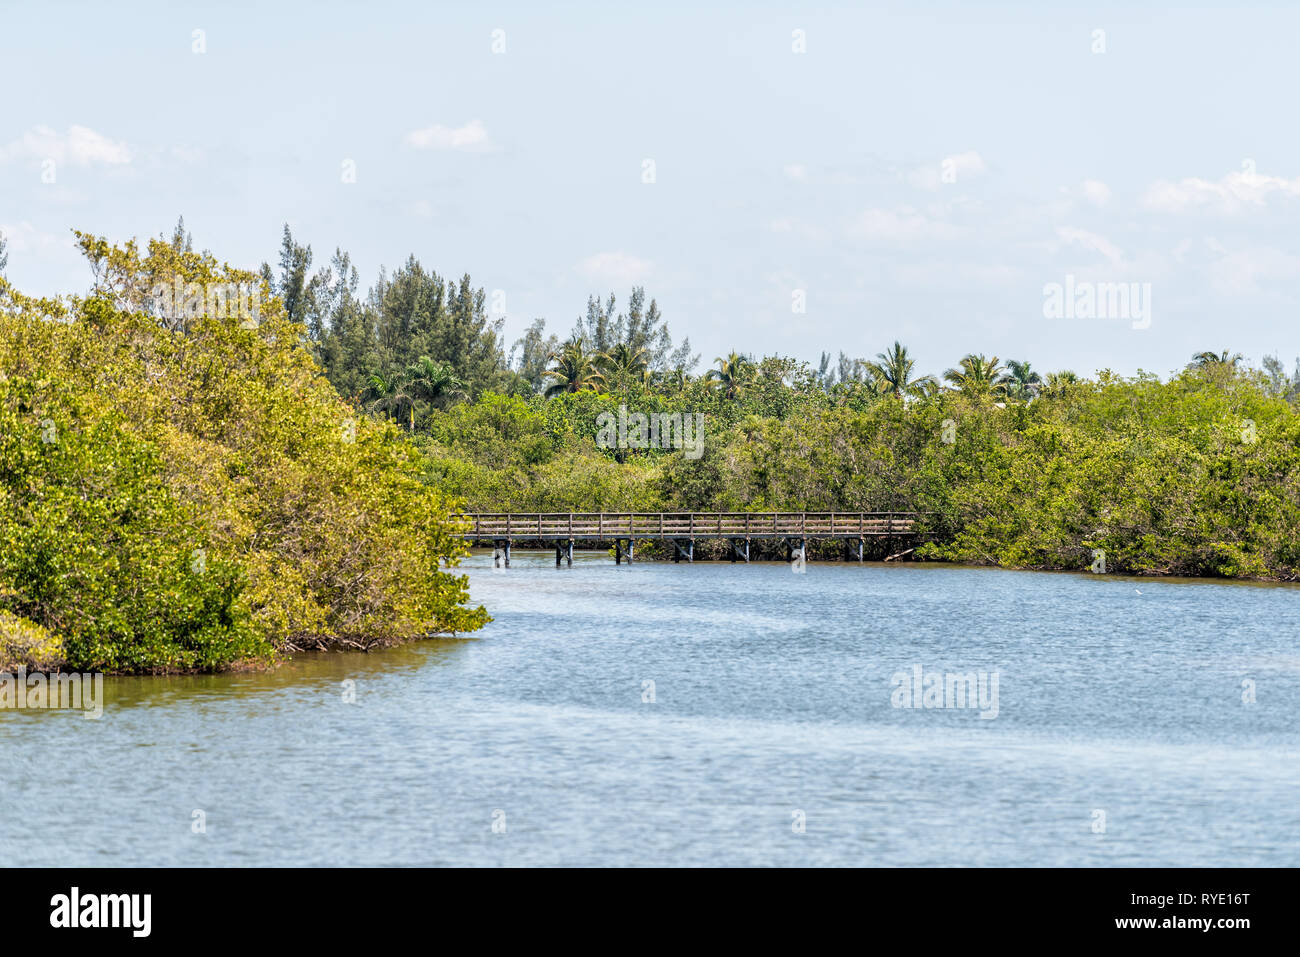 Sanibel Island, USA Bowman's beach with landscape view of Bayou from bridge and wooden boardwalk with nobody on river bay Stock Photo